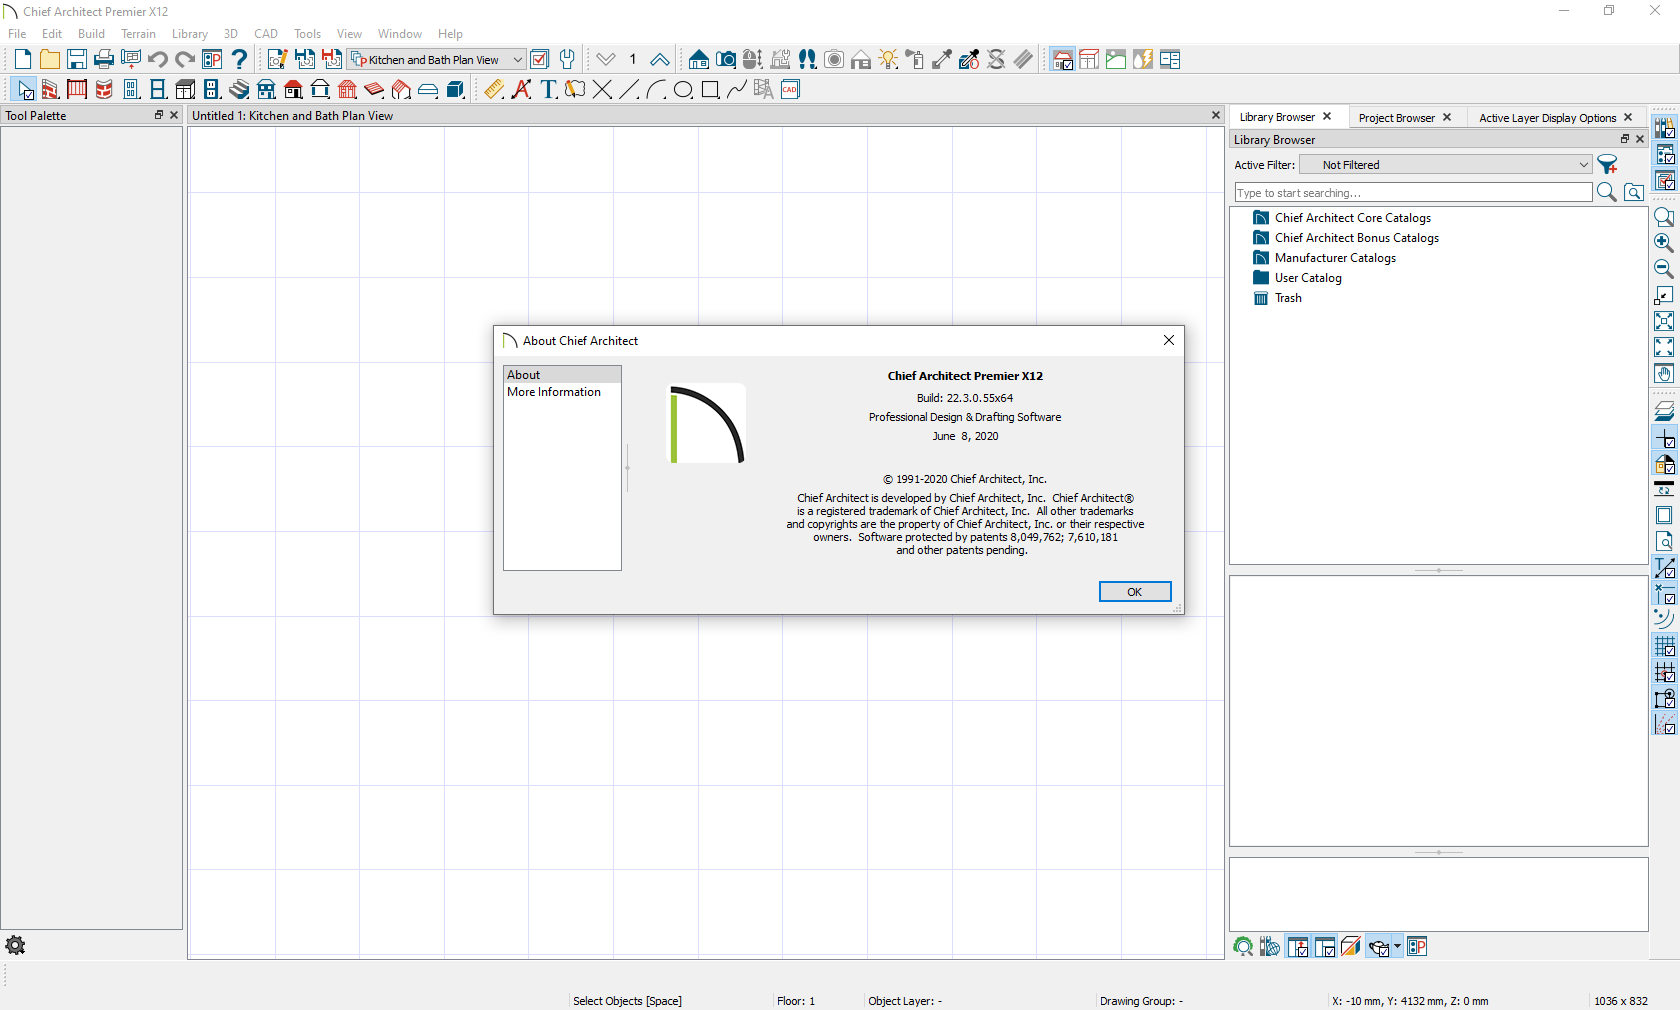 Working with Chief Architect Home Designer Pro 2021 v22.3.0.55 x64 full